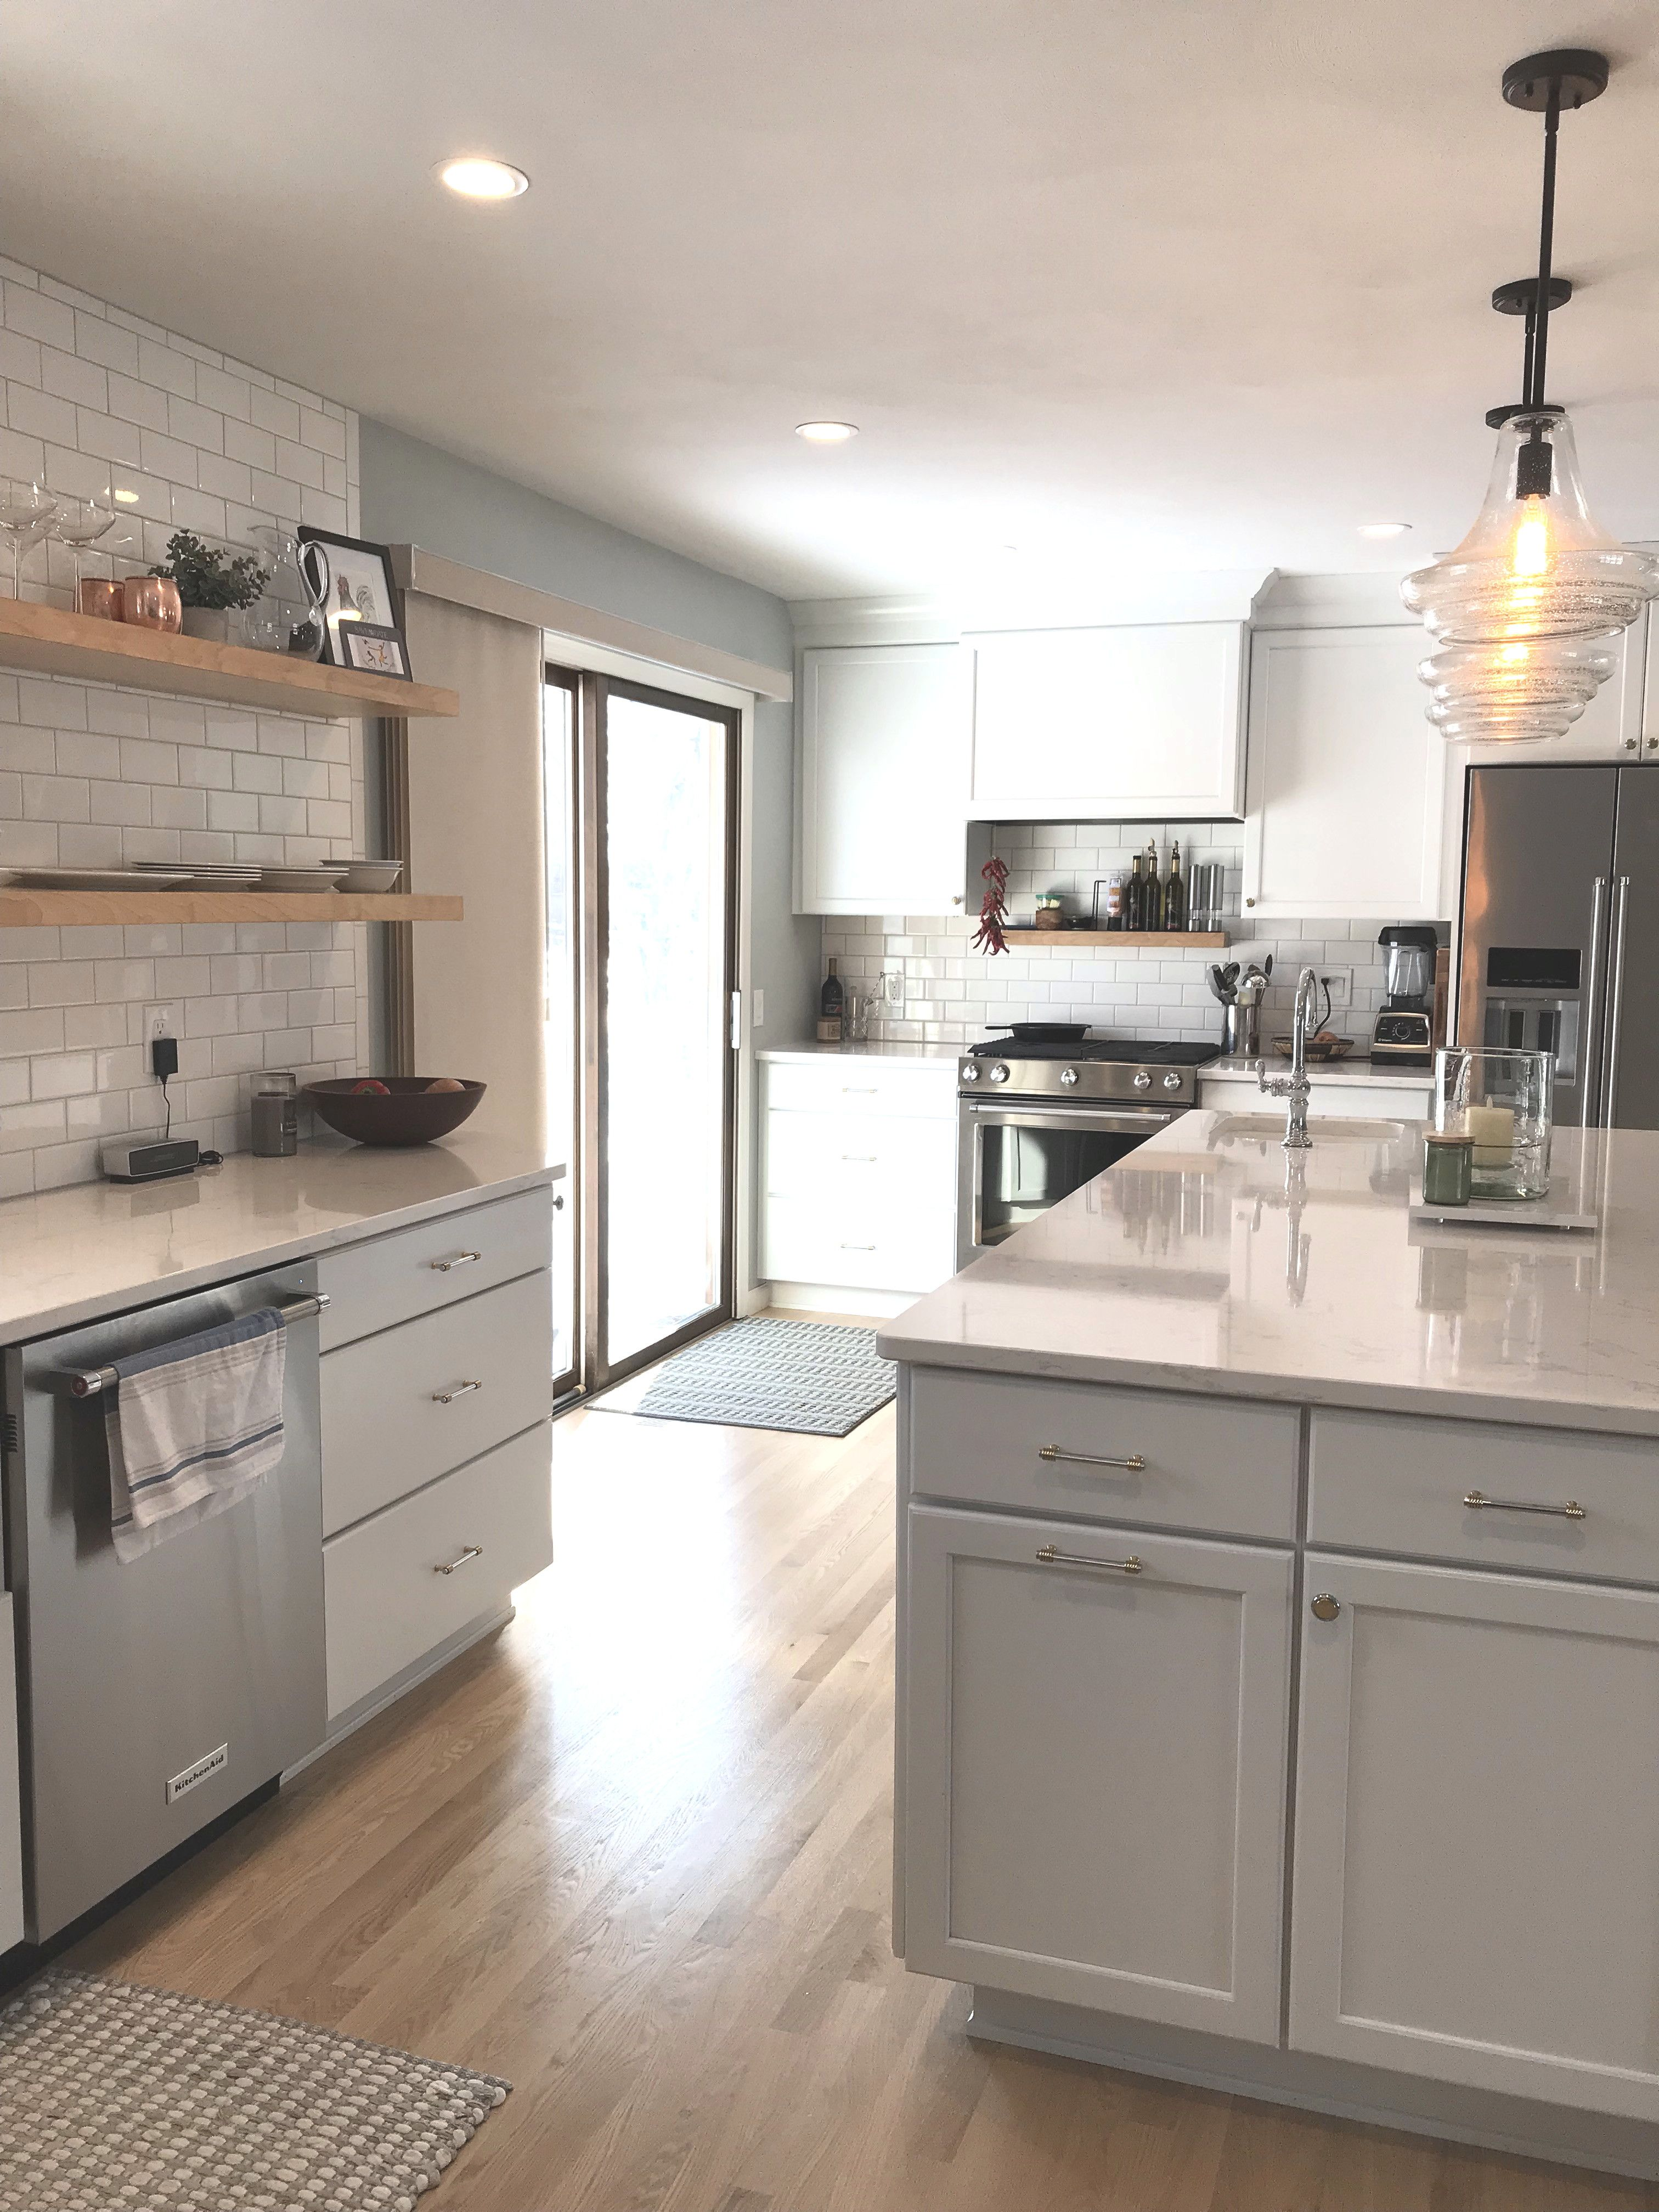 This Open Floor Plan Is Brightened Up With White Cabinets And